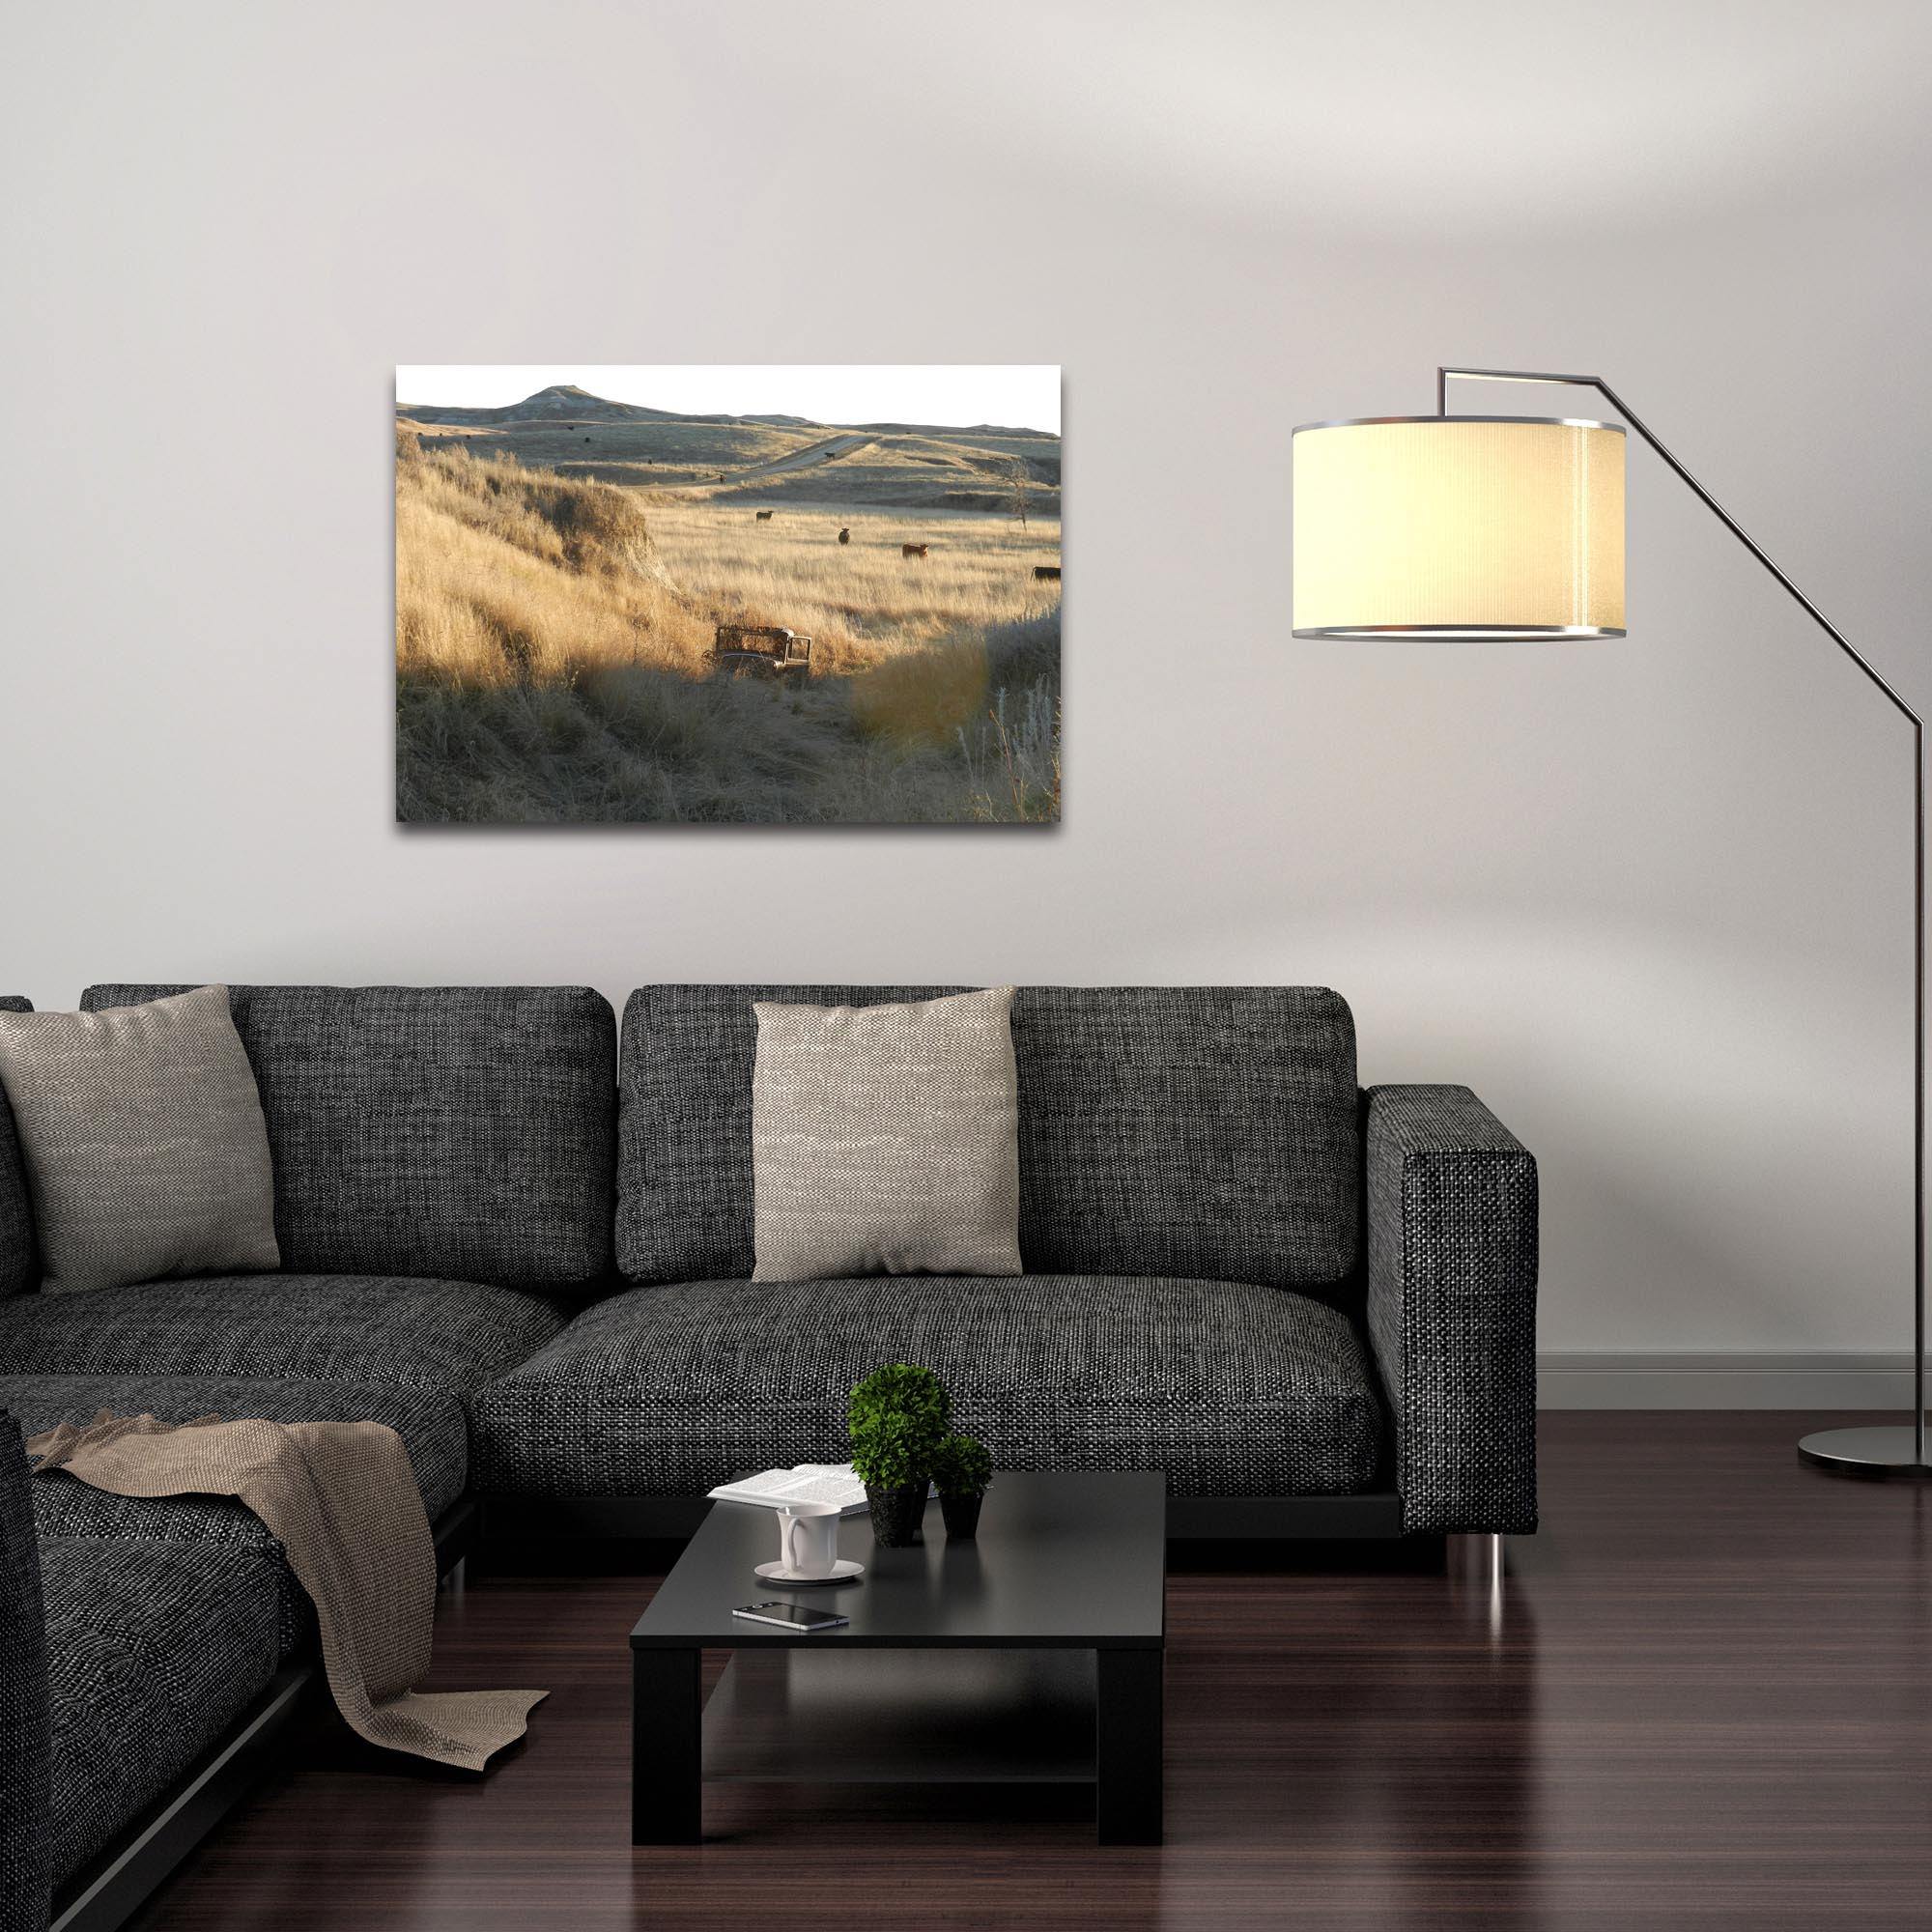 Western Wall Art 'Out West' - American West Decor on Metal or Plexiglass - Lifestyle View